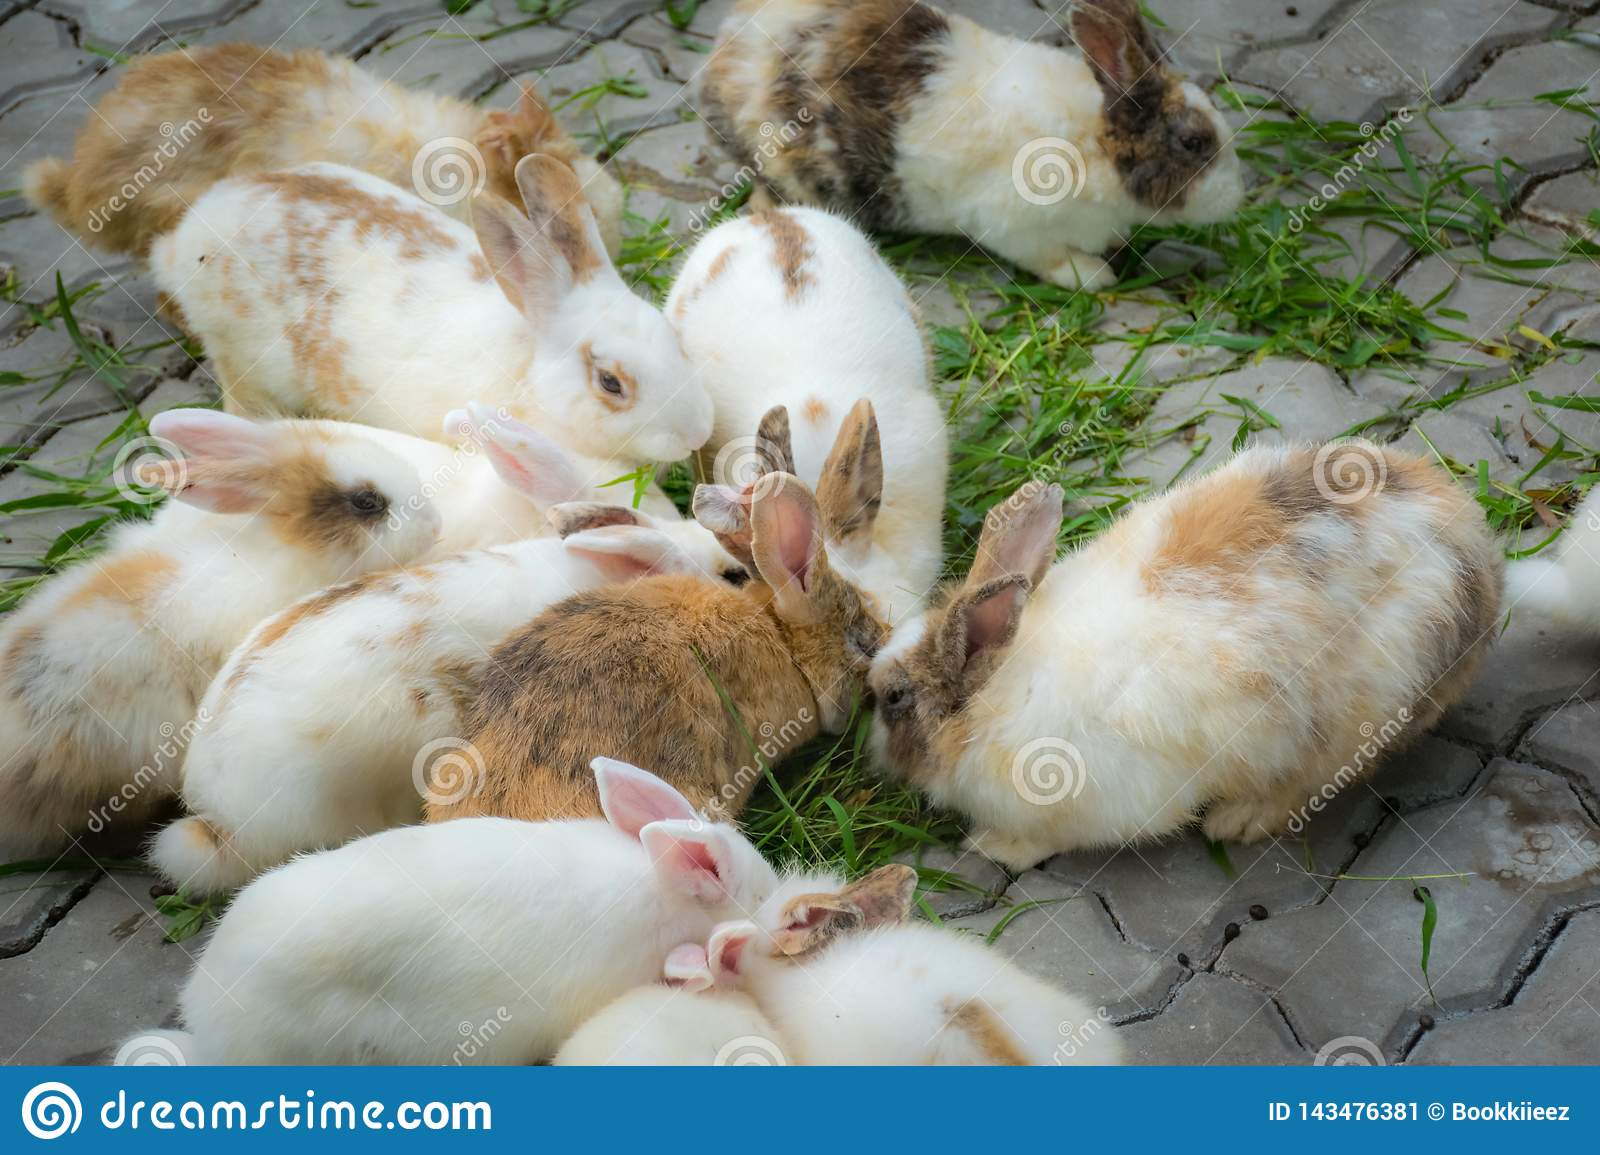 Adorable rabbits are eating grasses on ground.